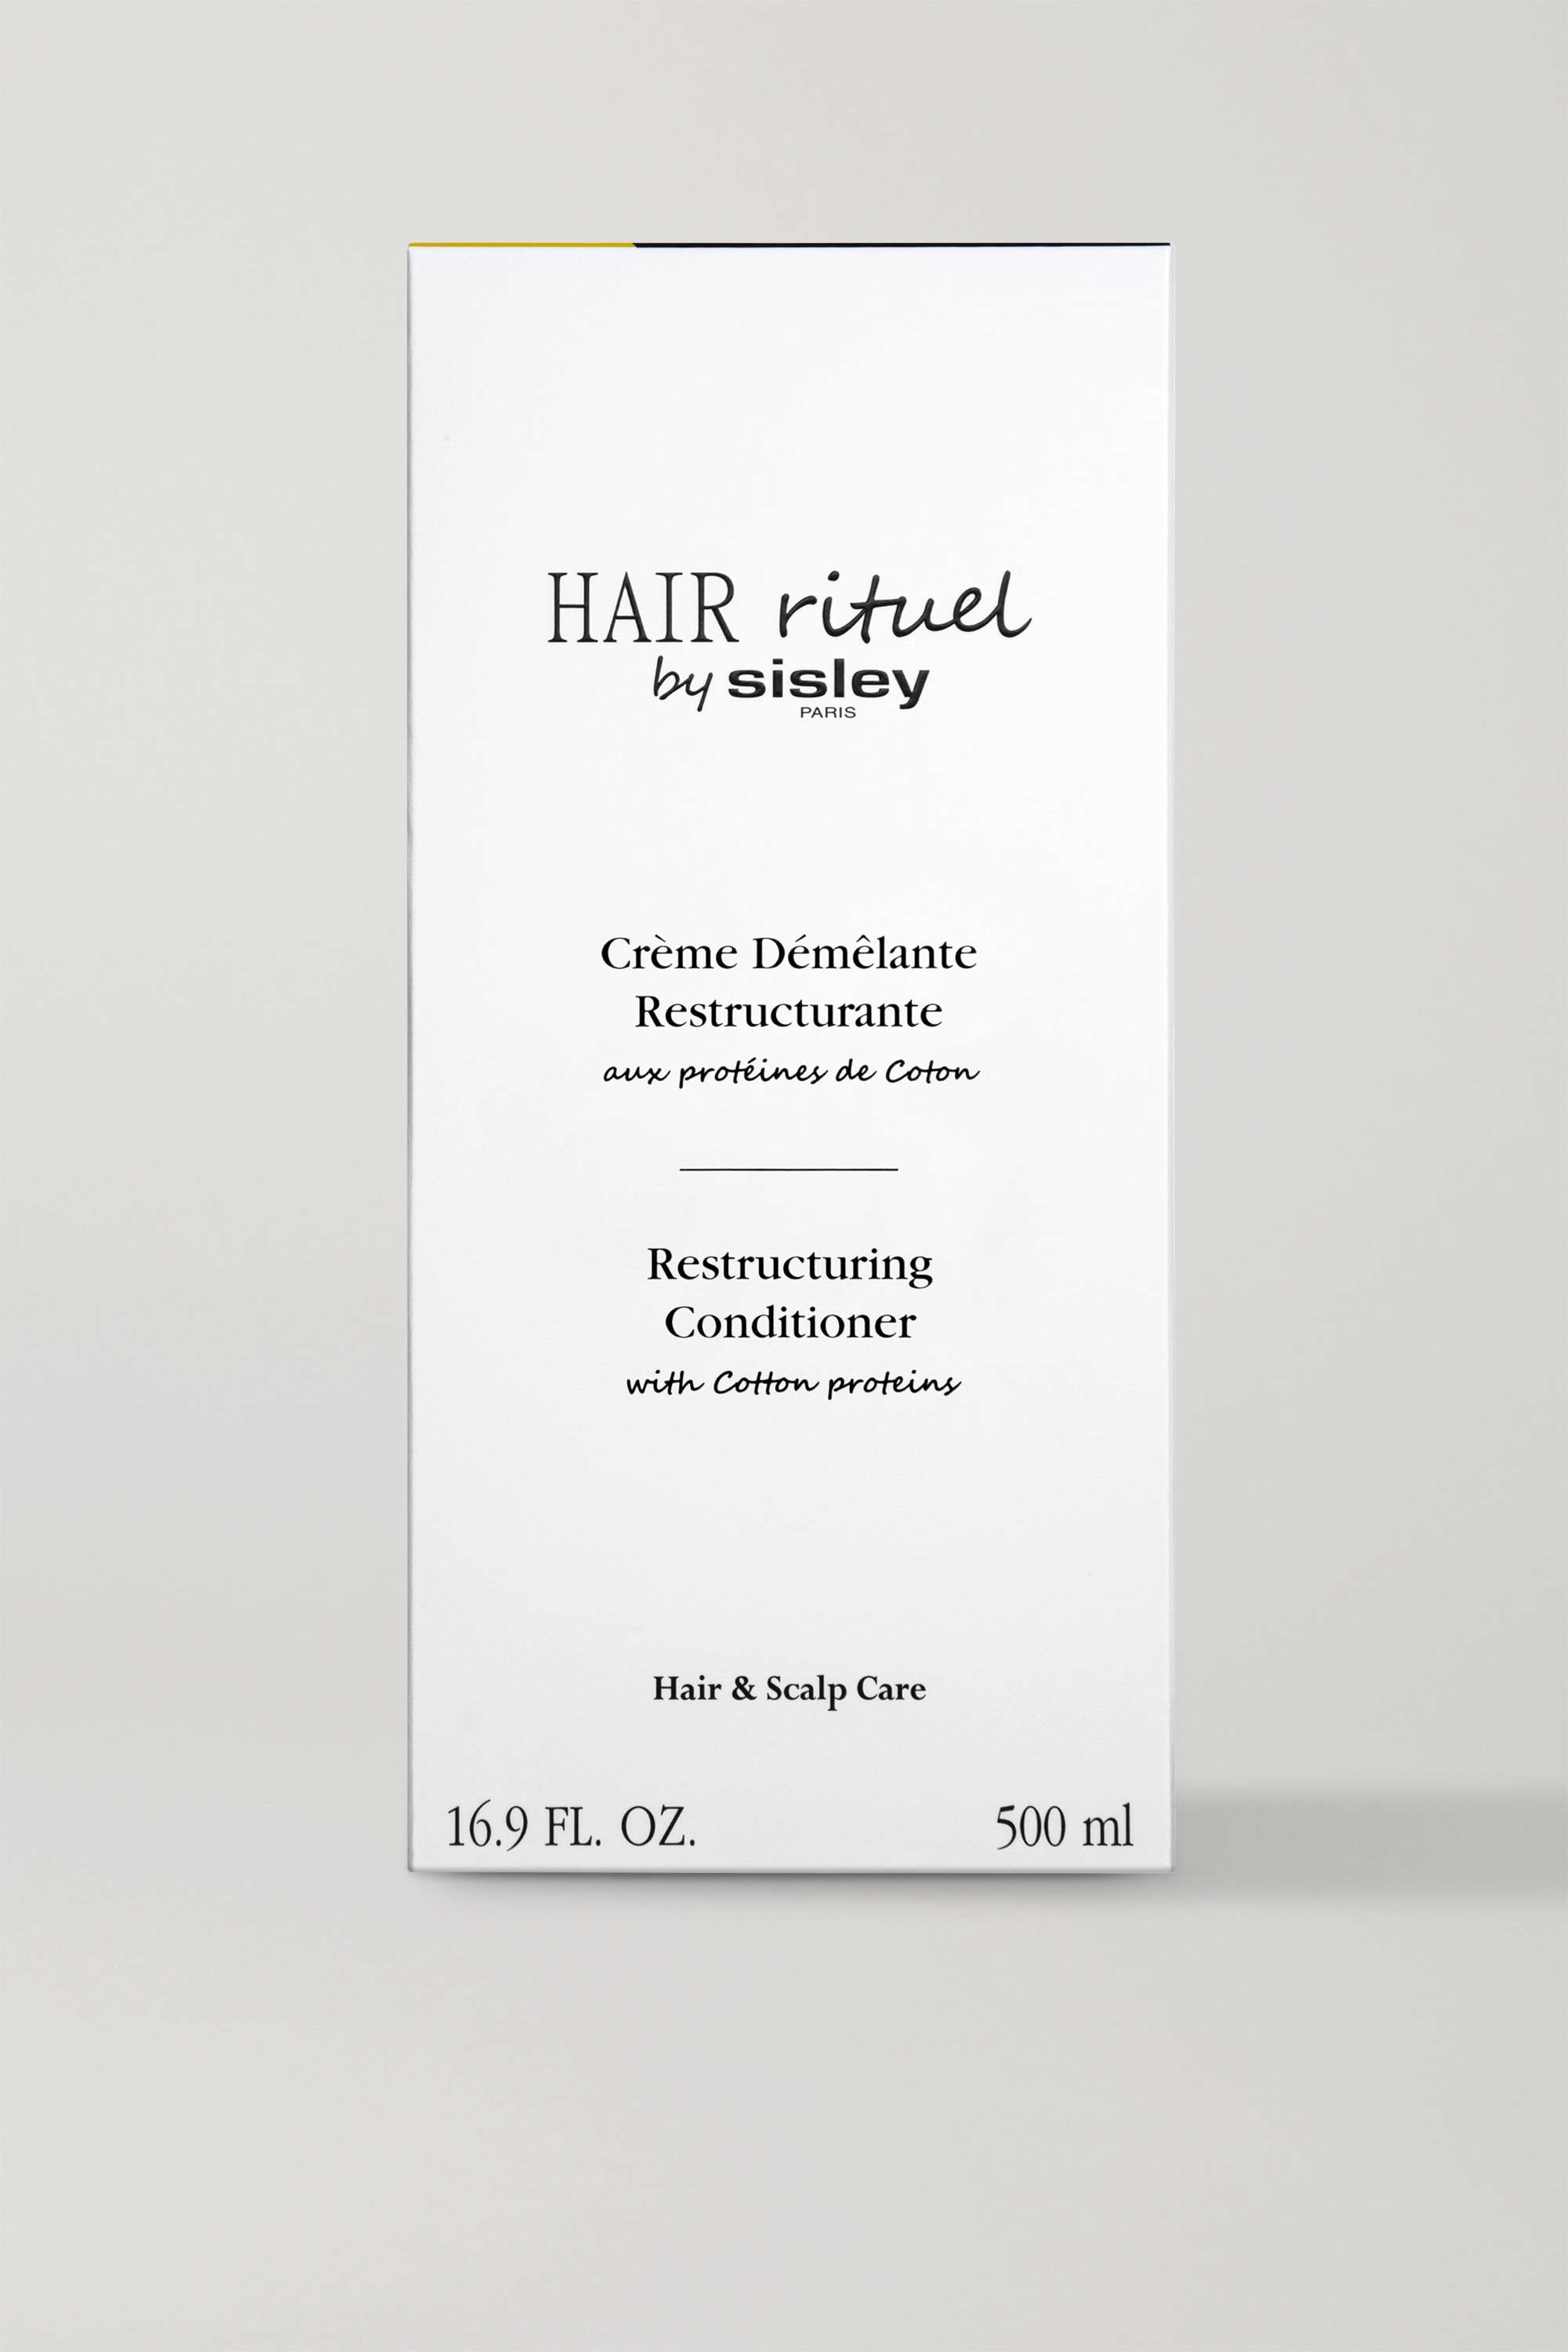 HAIR rituel by Sisley Restructuring Conditioner, 500 ml – Conditioner